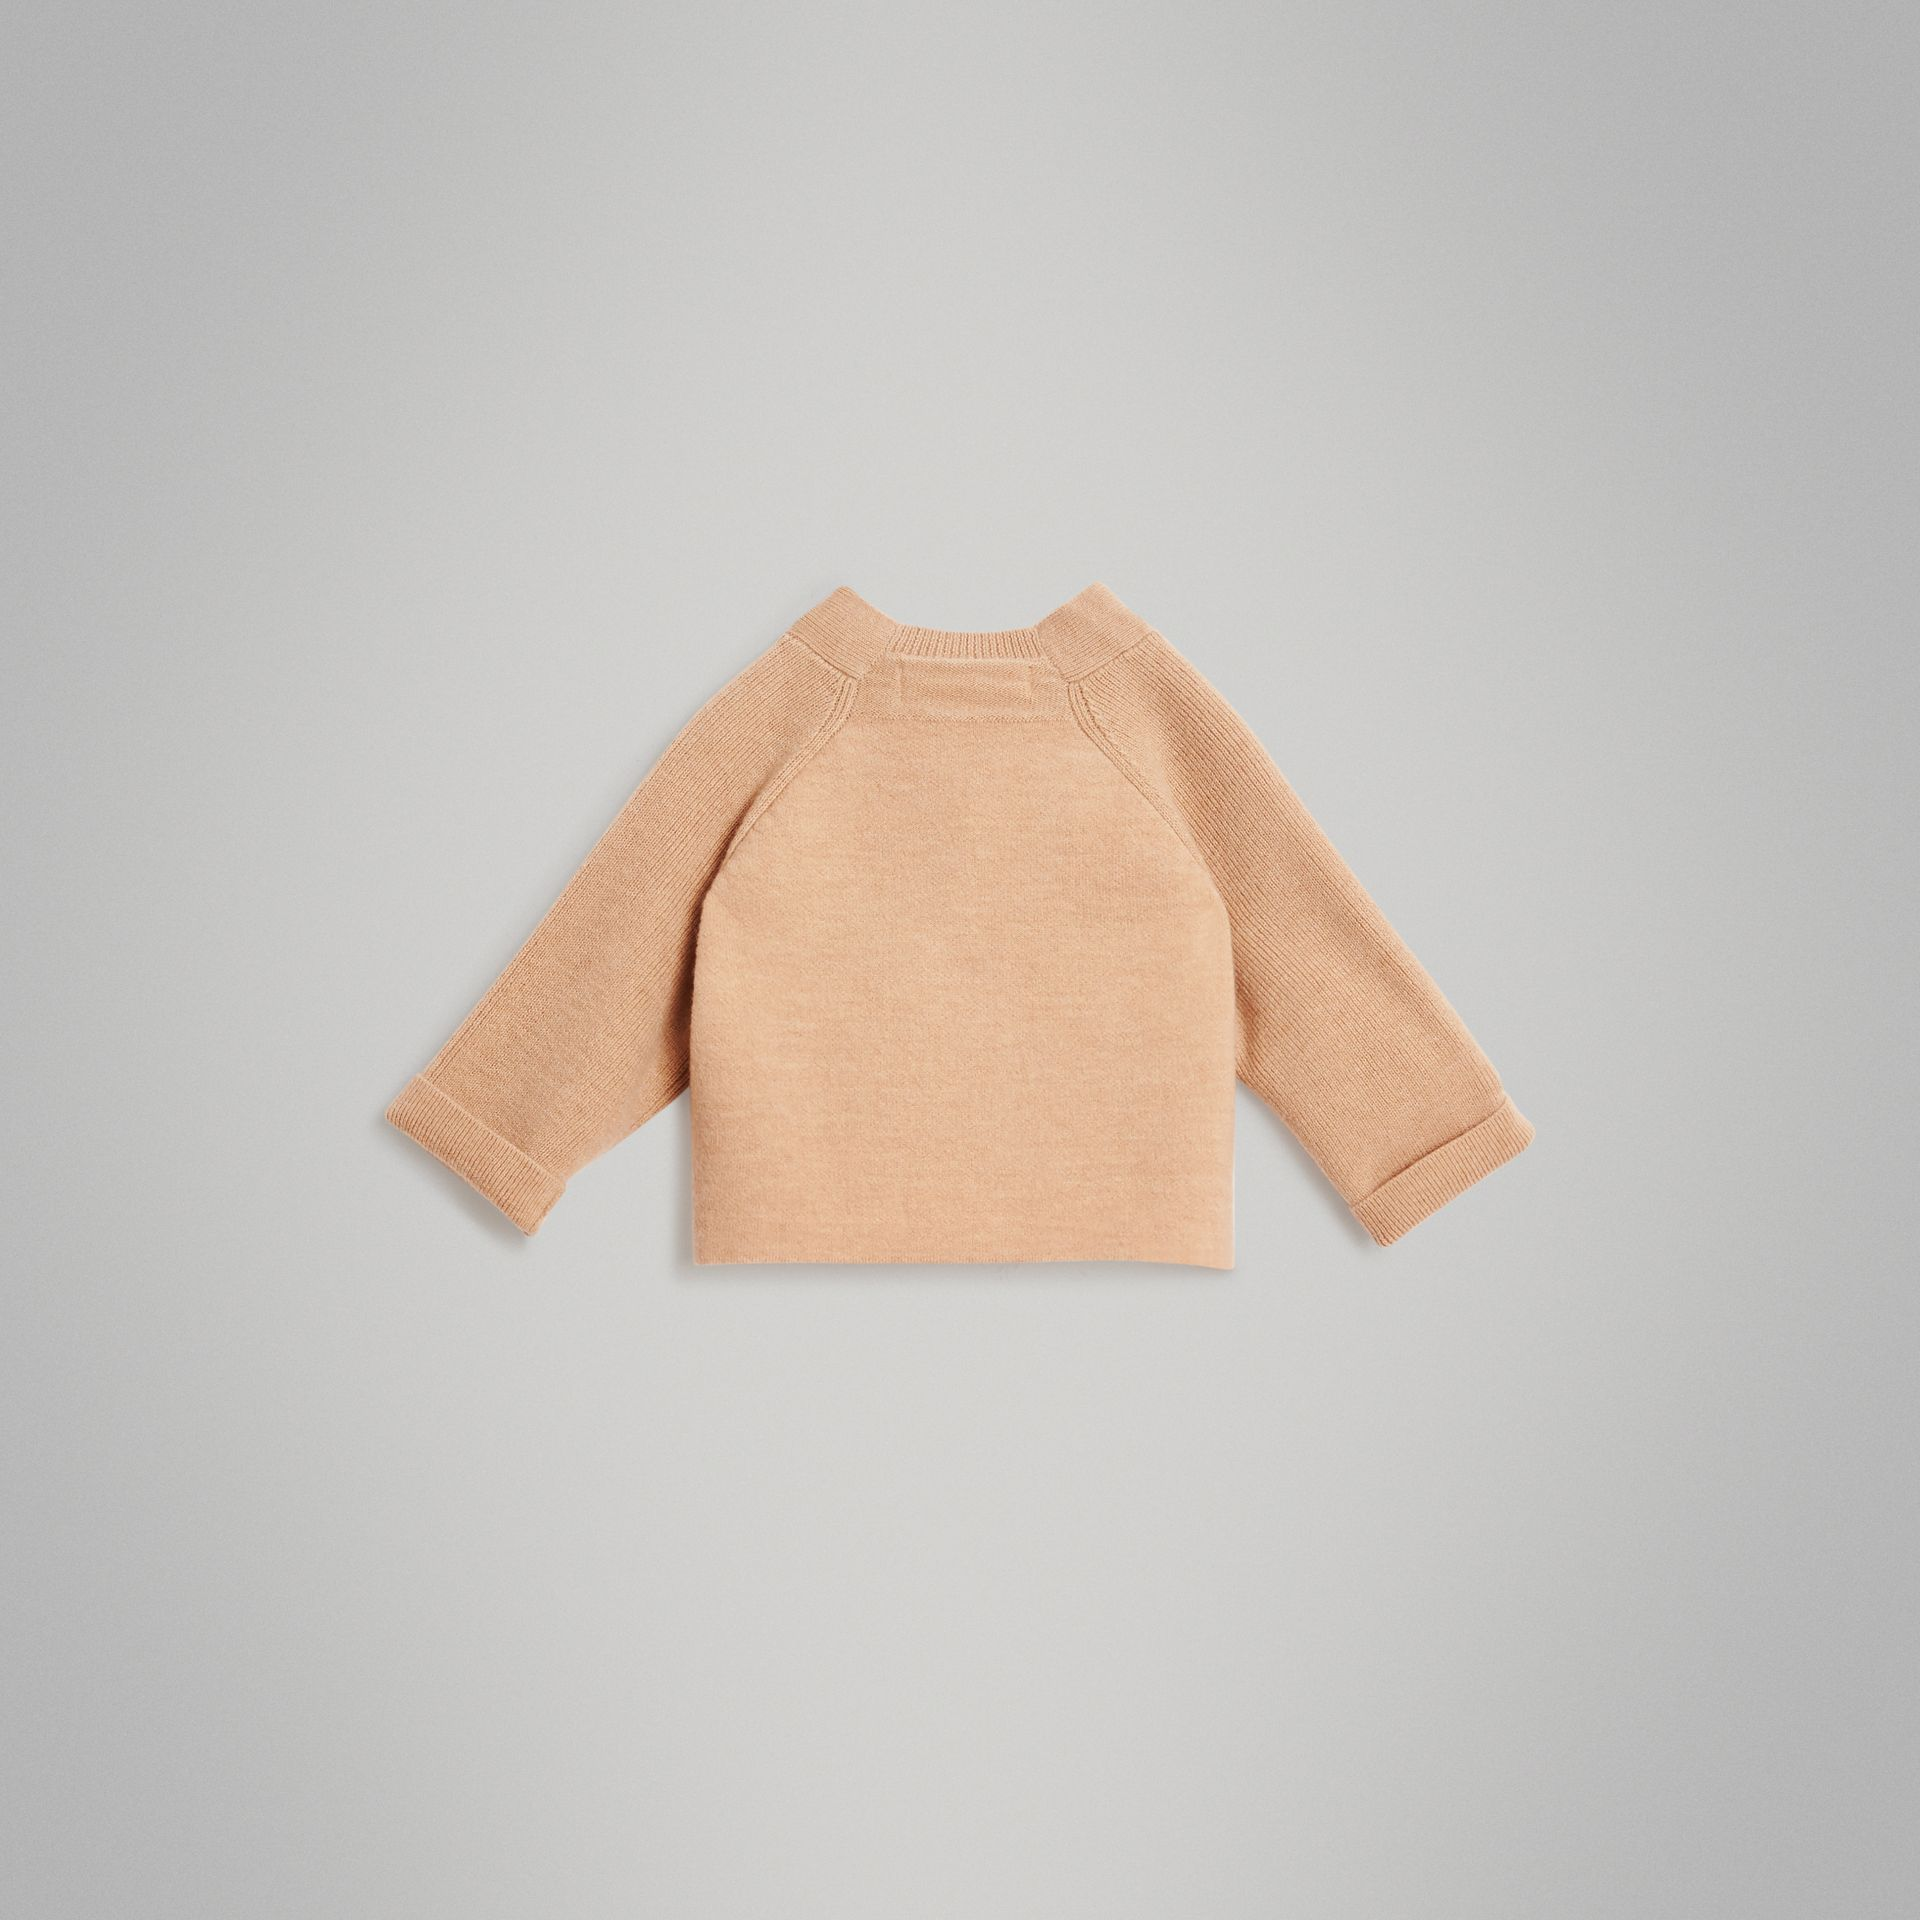 Cashmere Cotton Knit Cardigan in Peach - Children | Burberry Hong Kong - gallery image 3